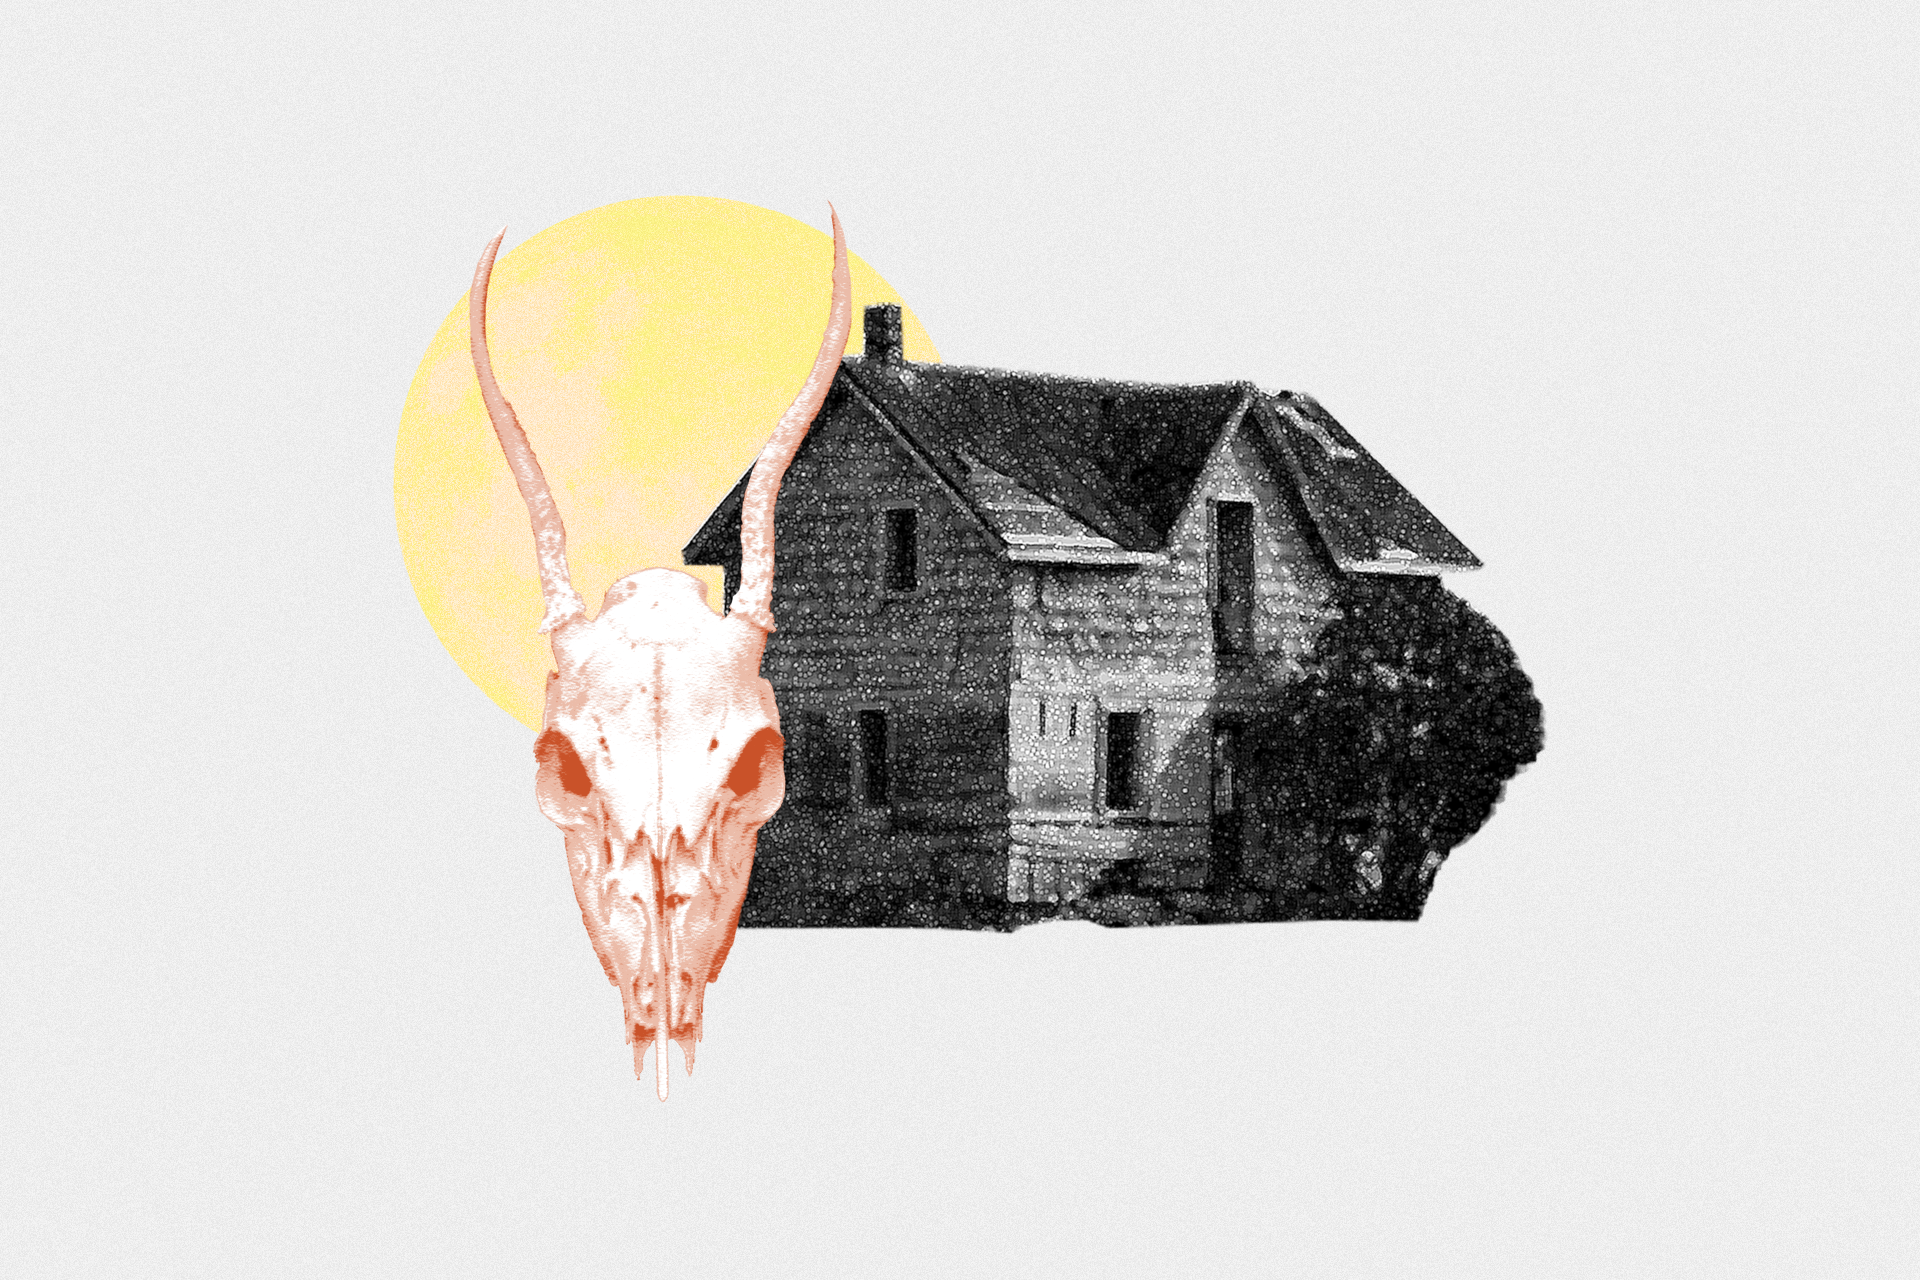 Collage of house and animal skull, illustration by Regine Salumbre